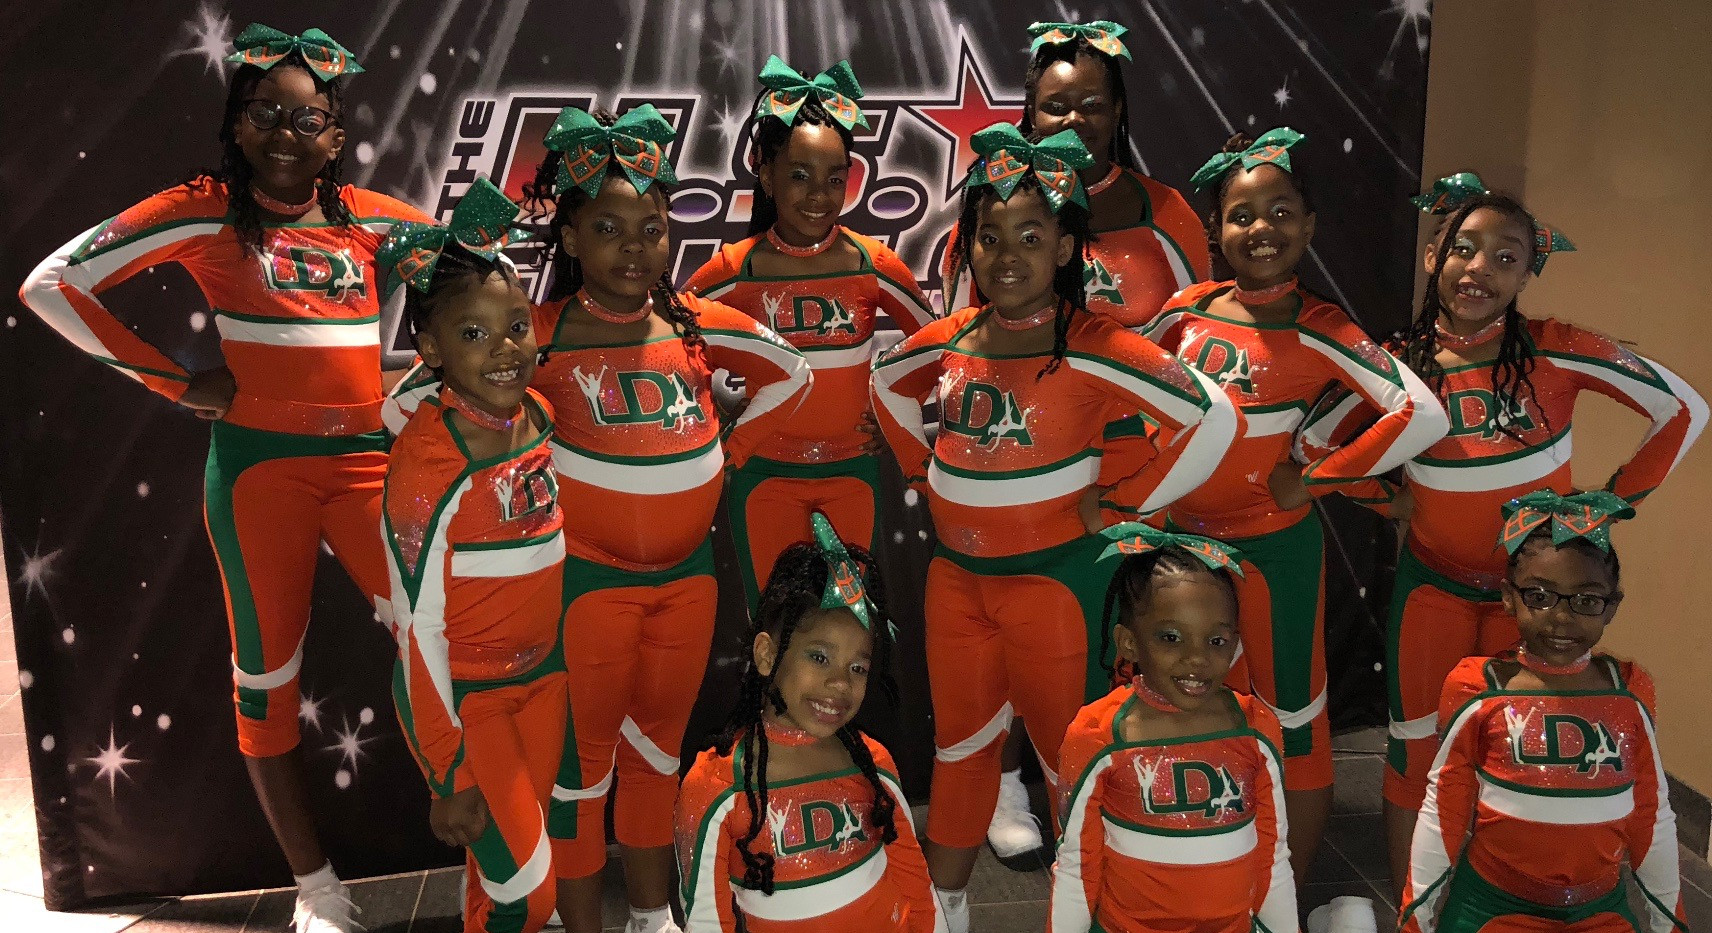 Cheer Competition 2017